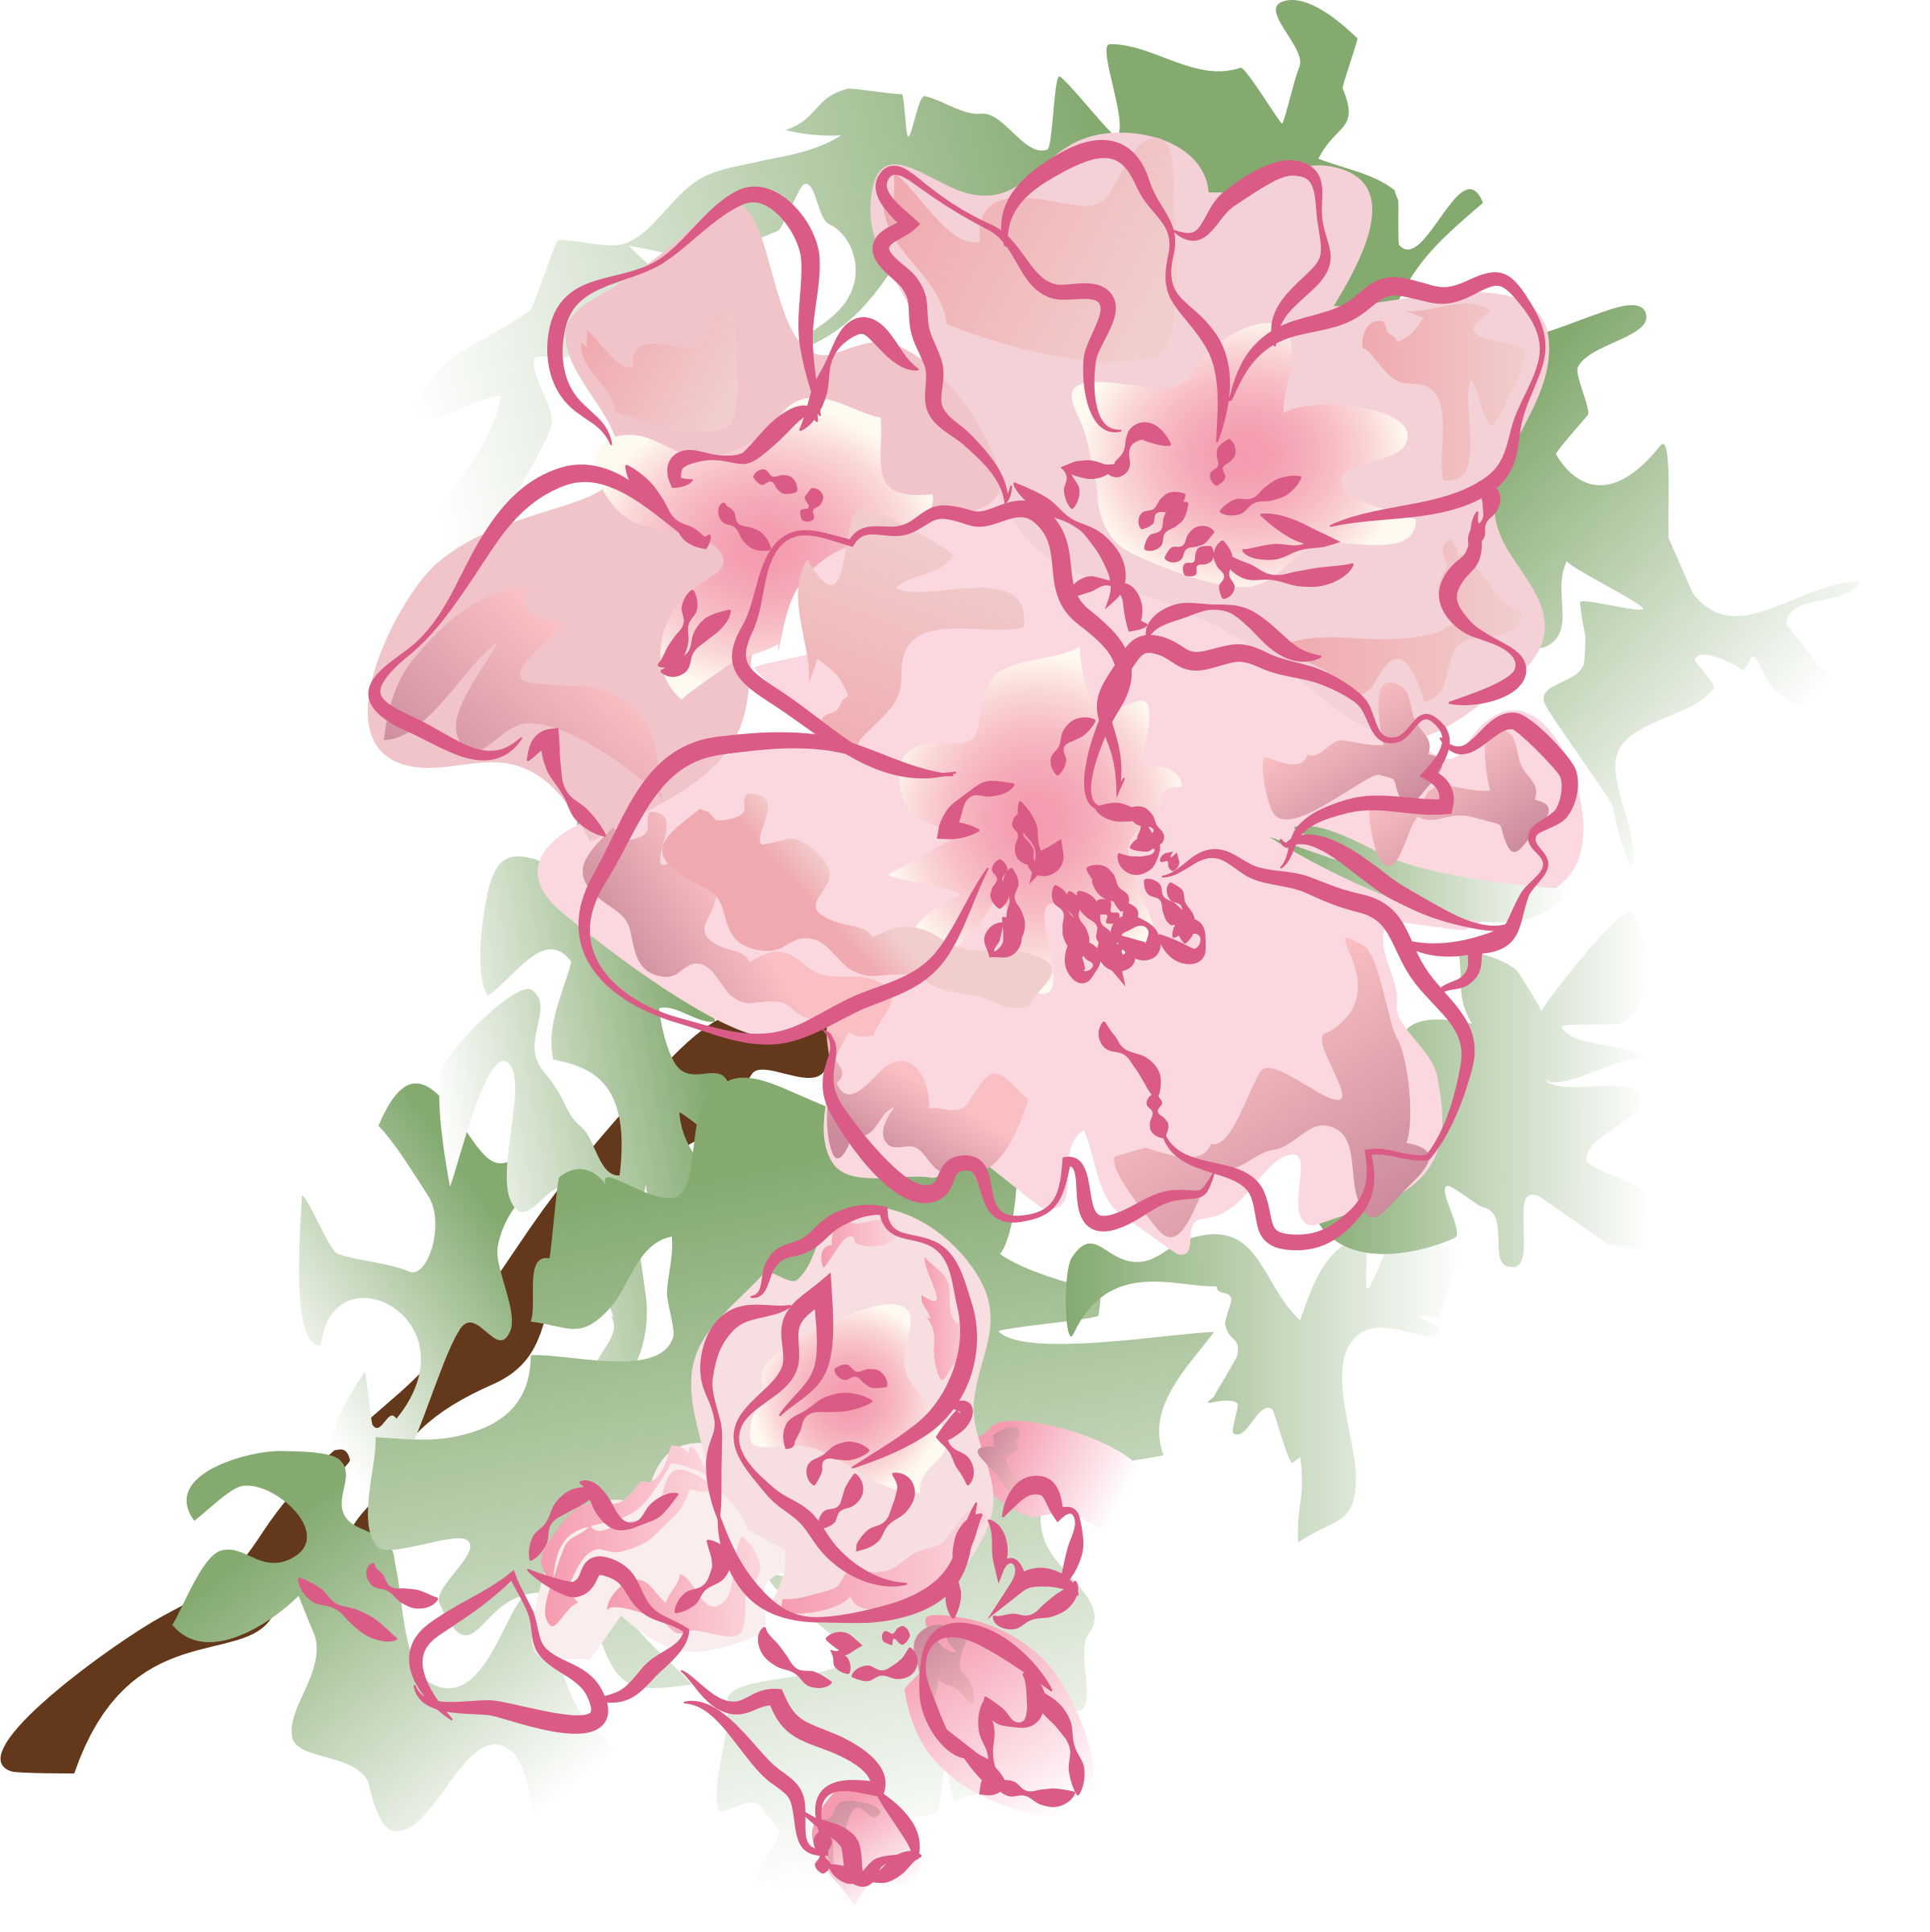 Blossom clipart mother's day Flower decoration flower 2 2